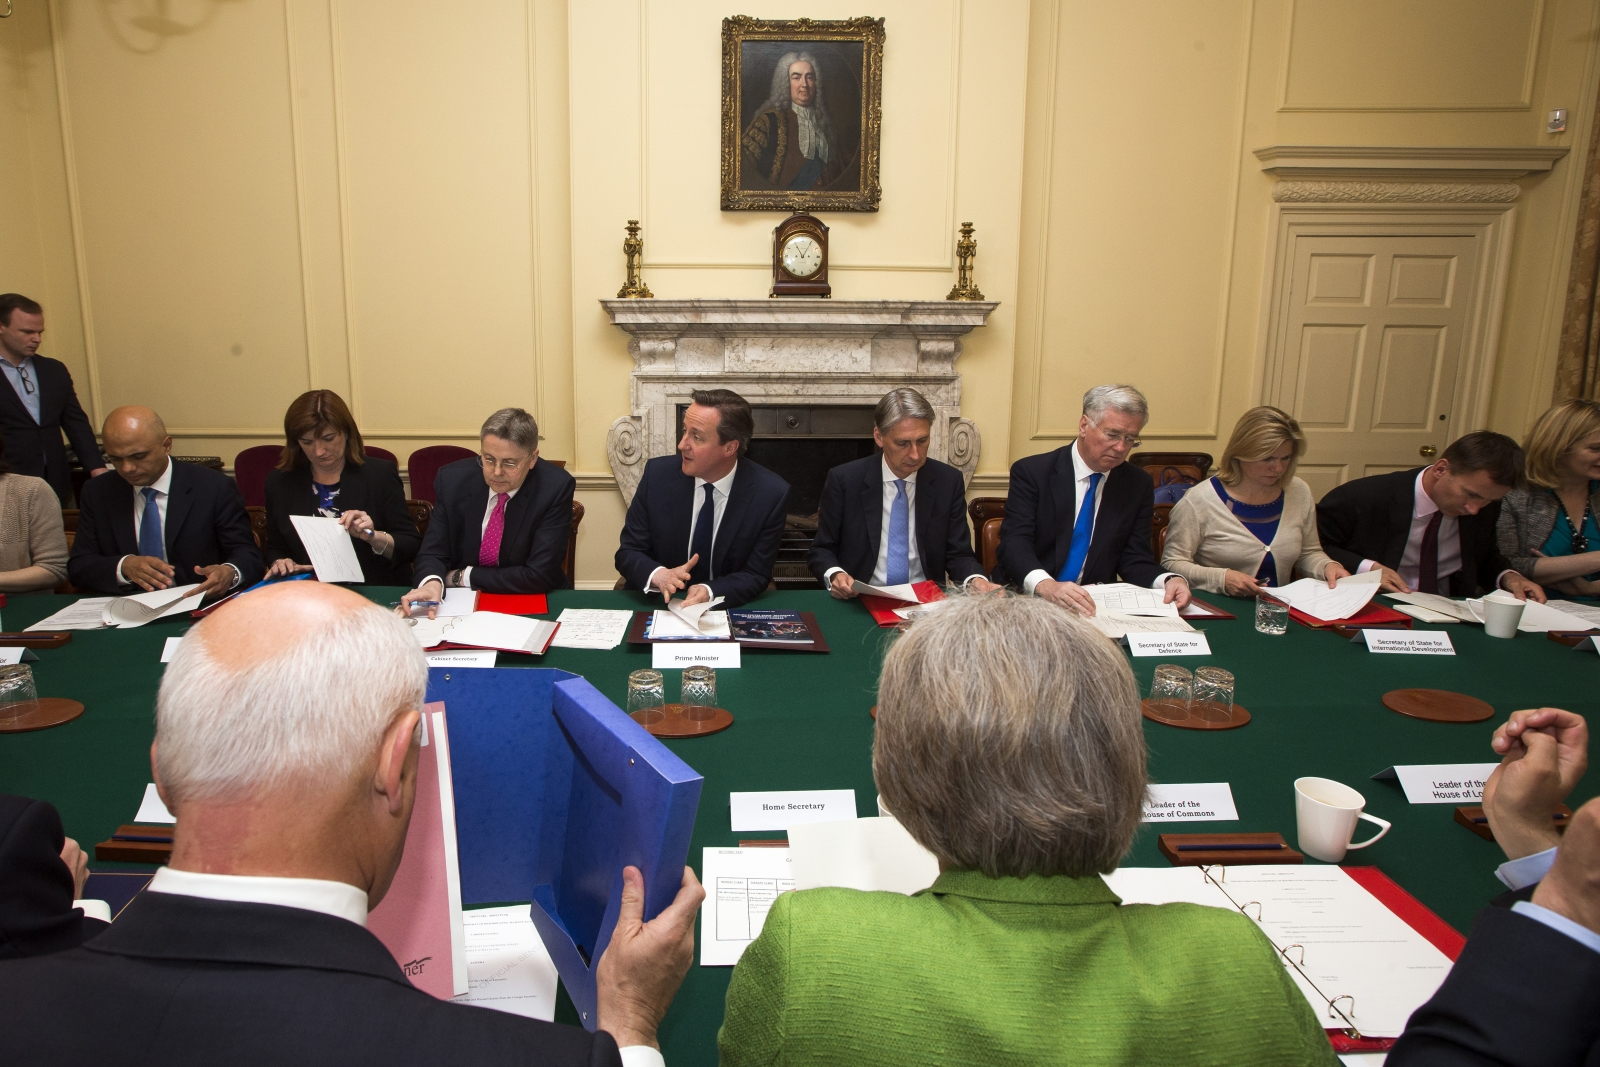 The all-Conservative cabinet